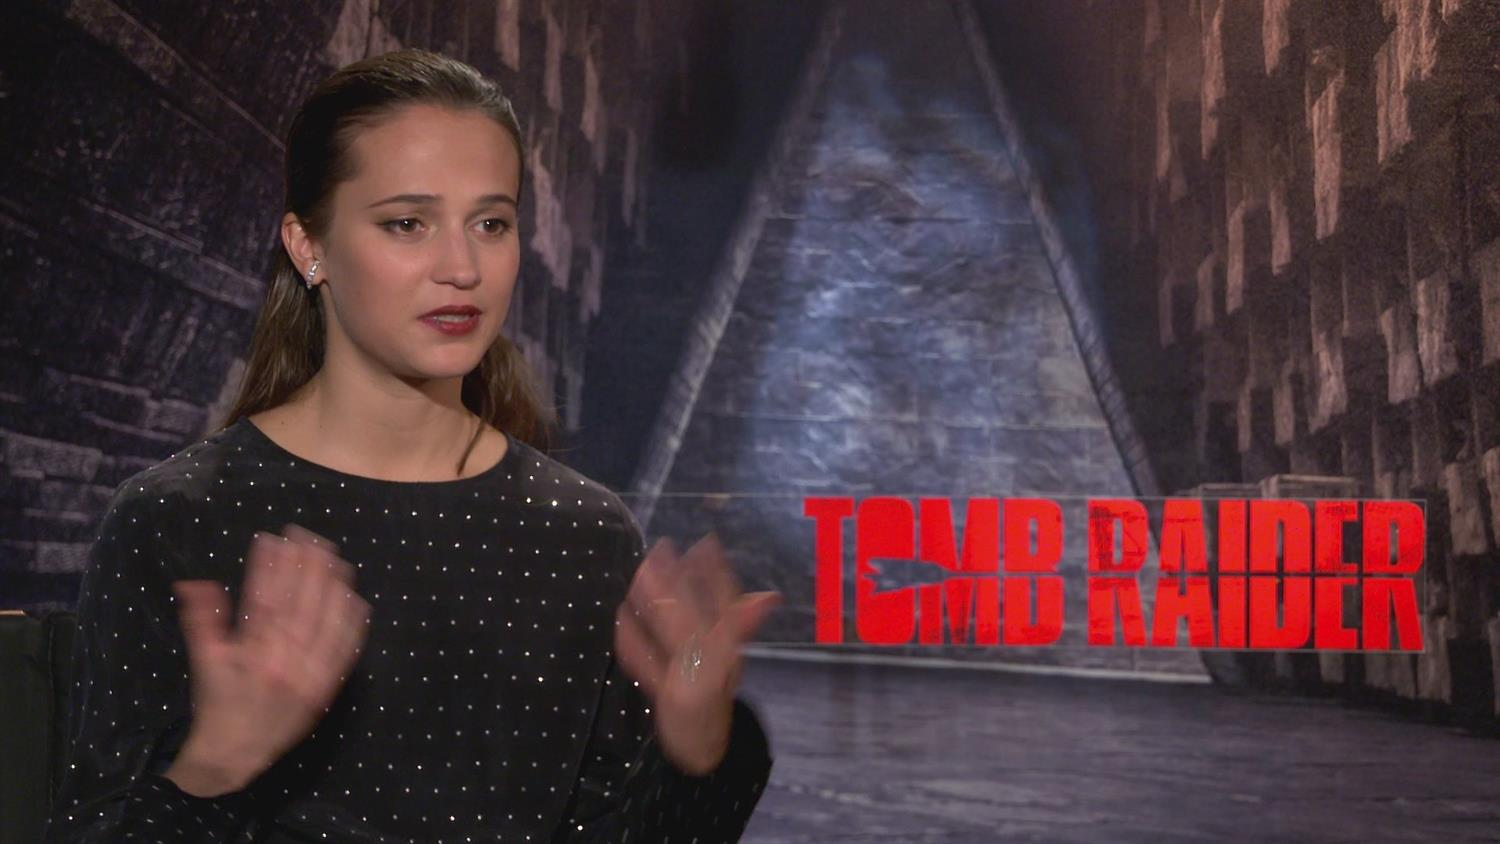 Tomb Raider's Alicia Vikander Has Thoughts About The Video Game